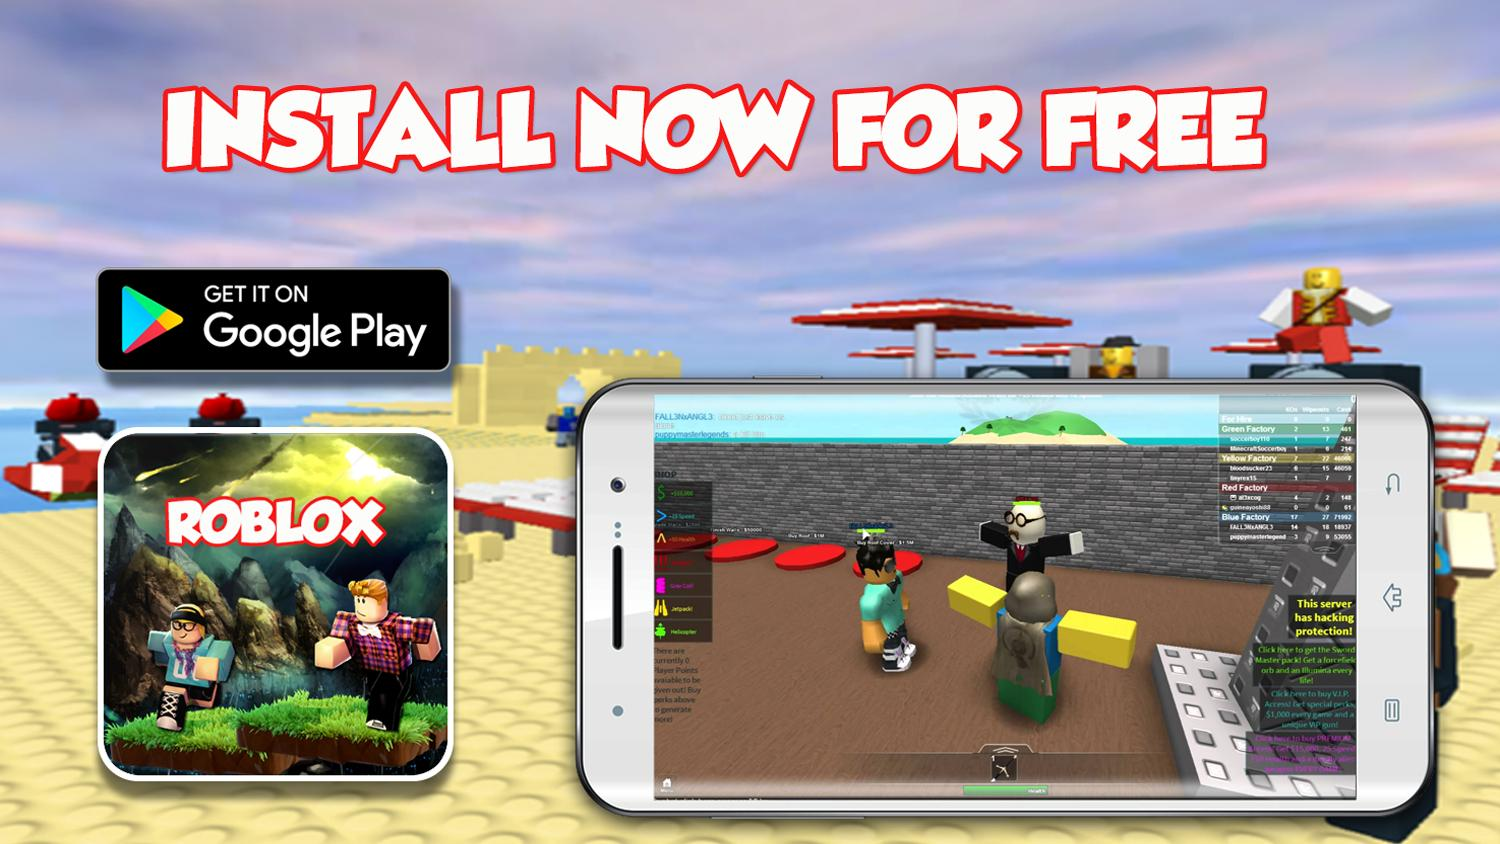 Guide For Roblox 2 Free for Android - APK Download